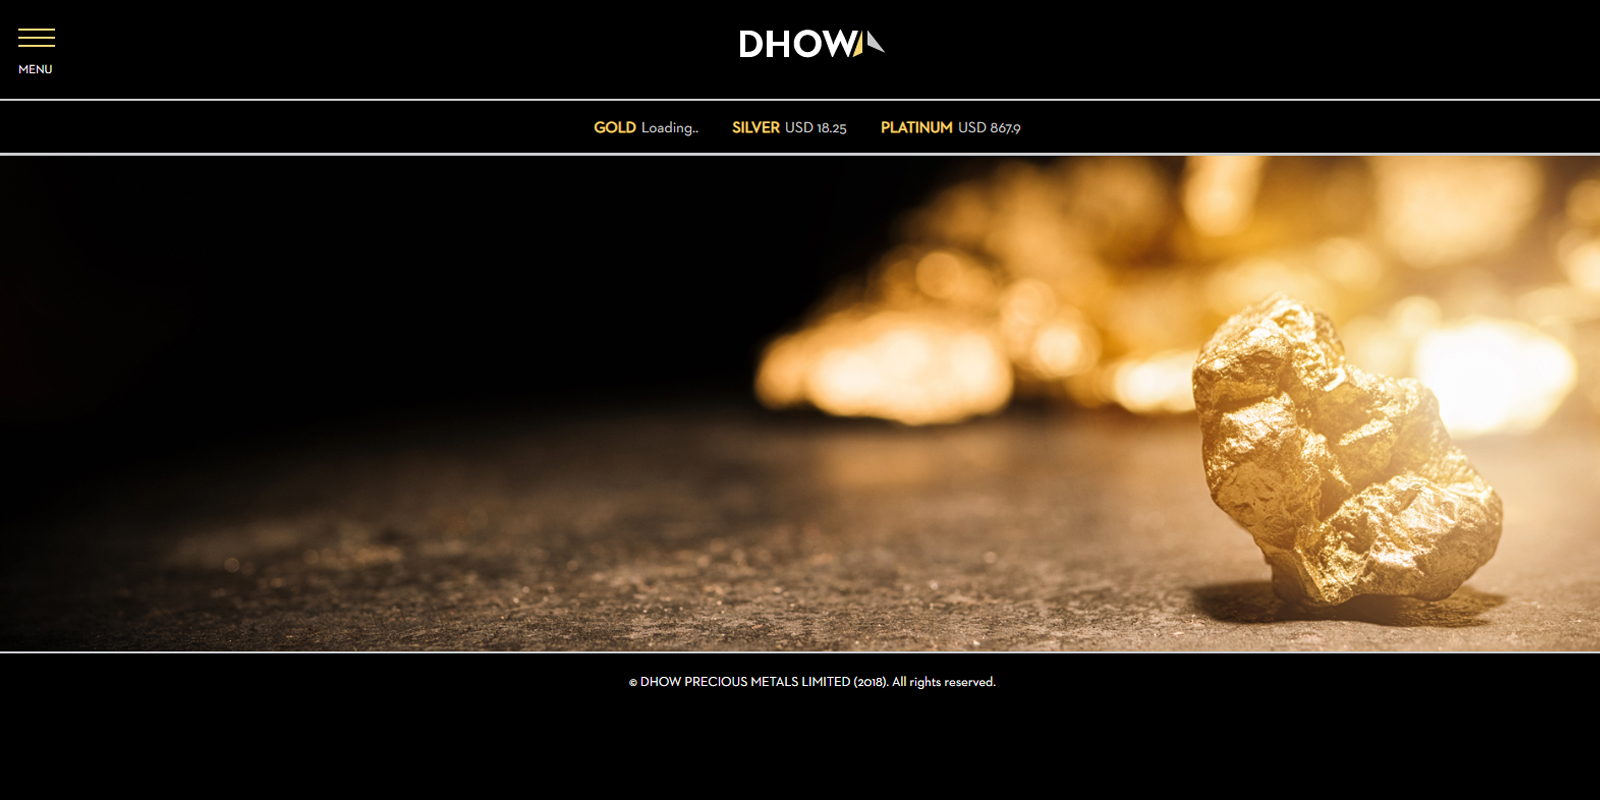 Dhow Precious Metals Limited